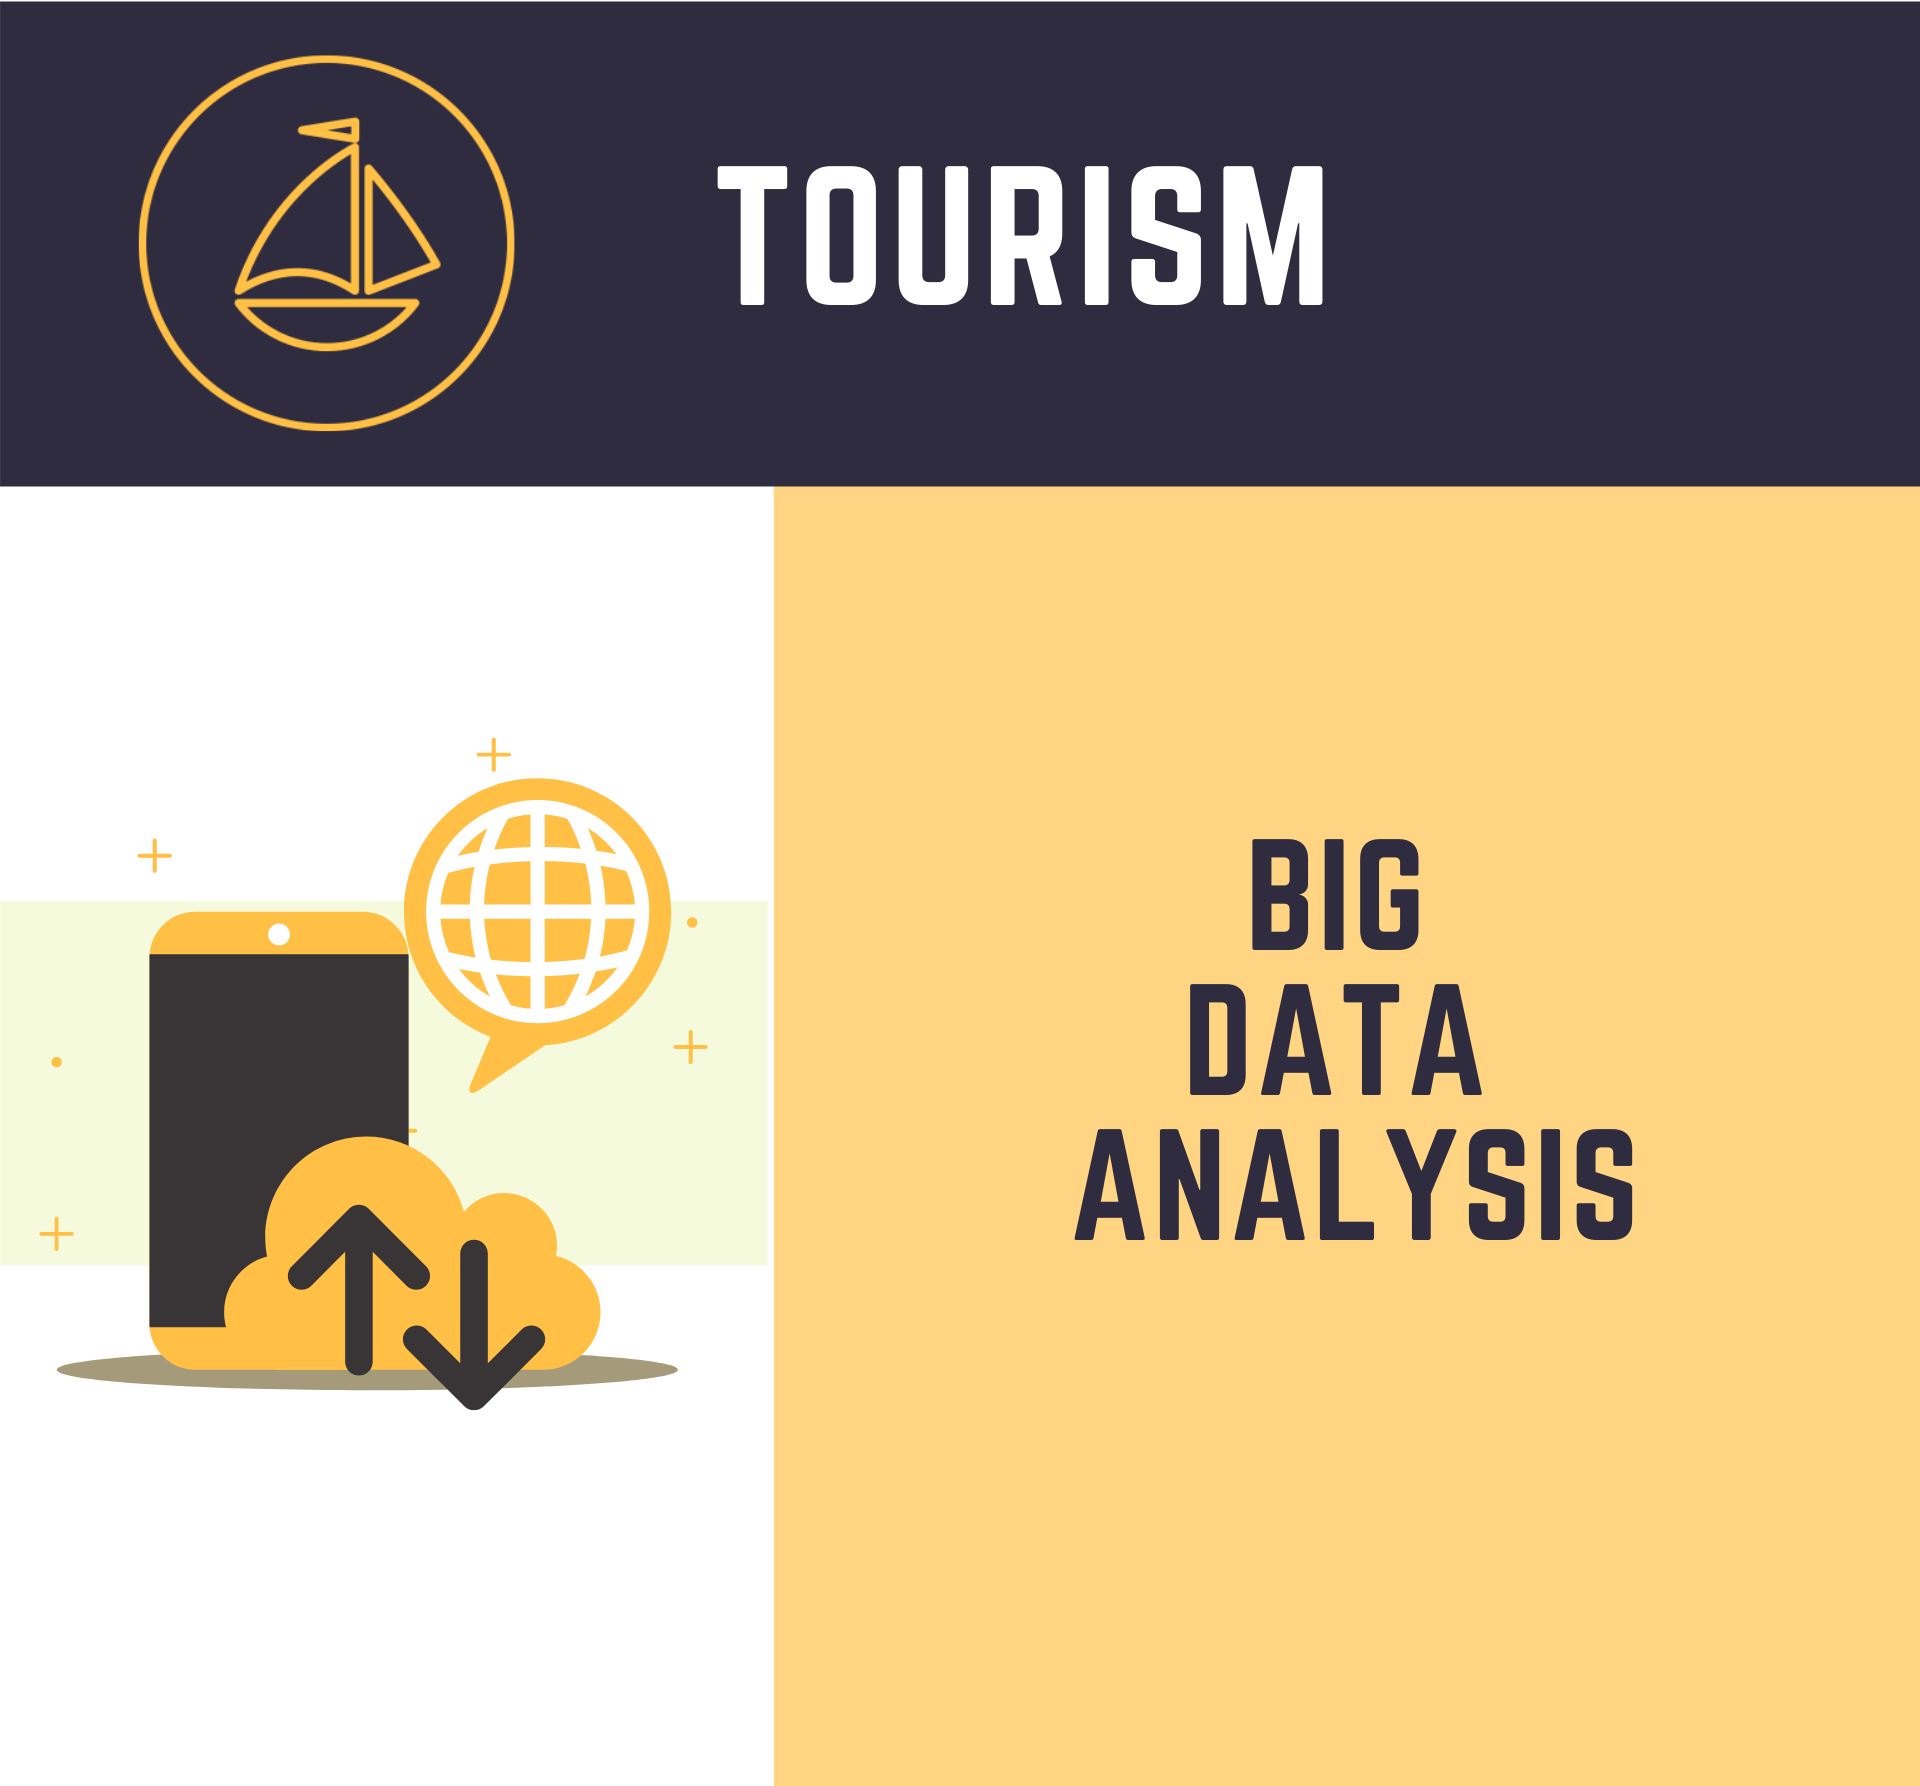 HOW TOURISTS PERCEIVE THE DIFERENT DESTINATIONS: BIG DATA ANALYSIS